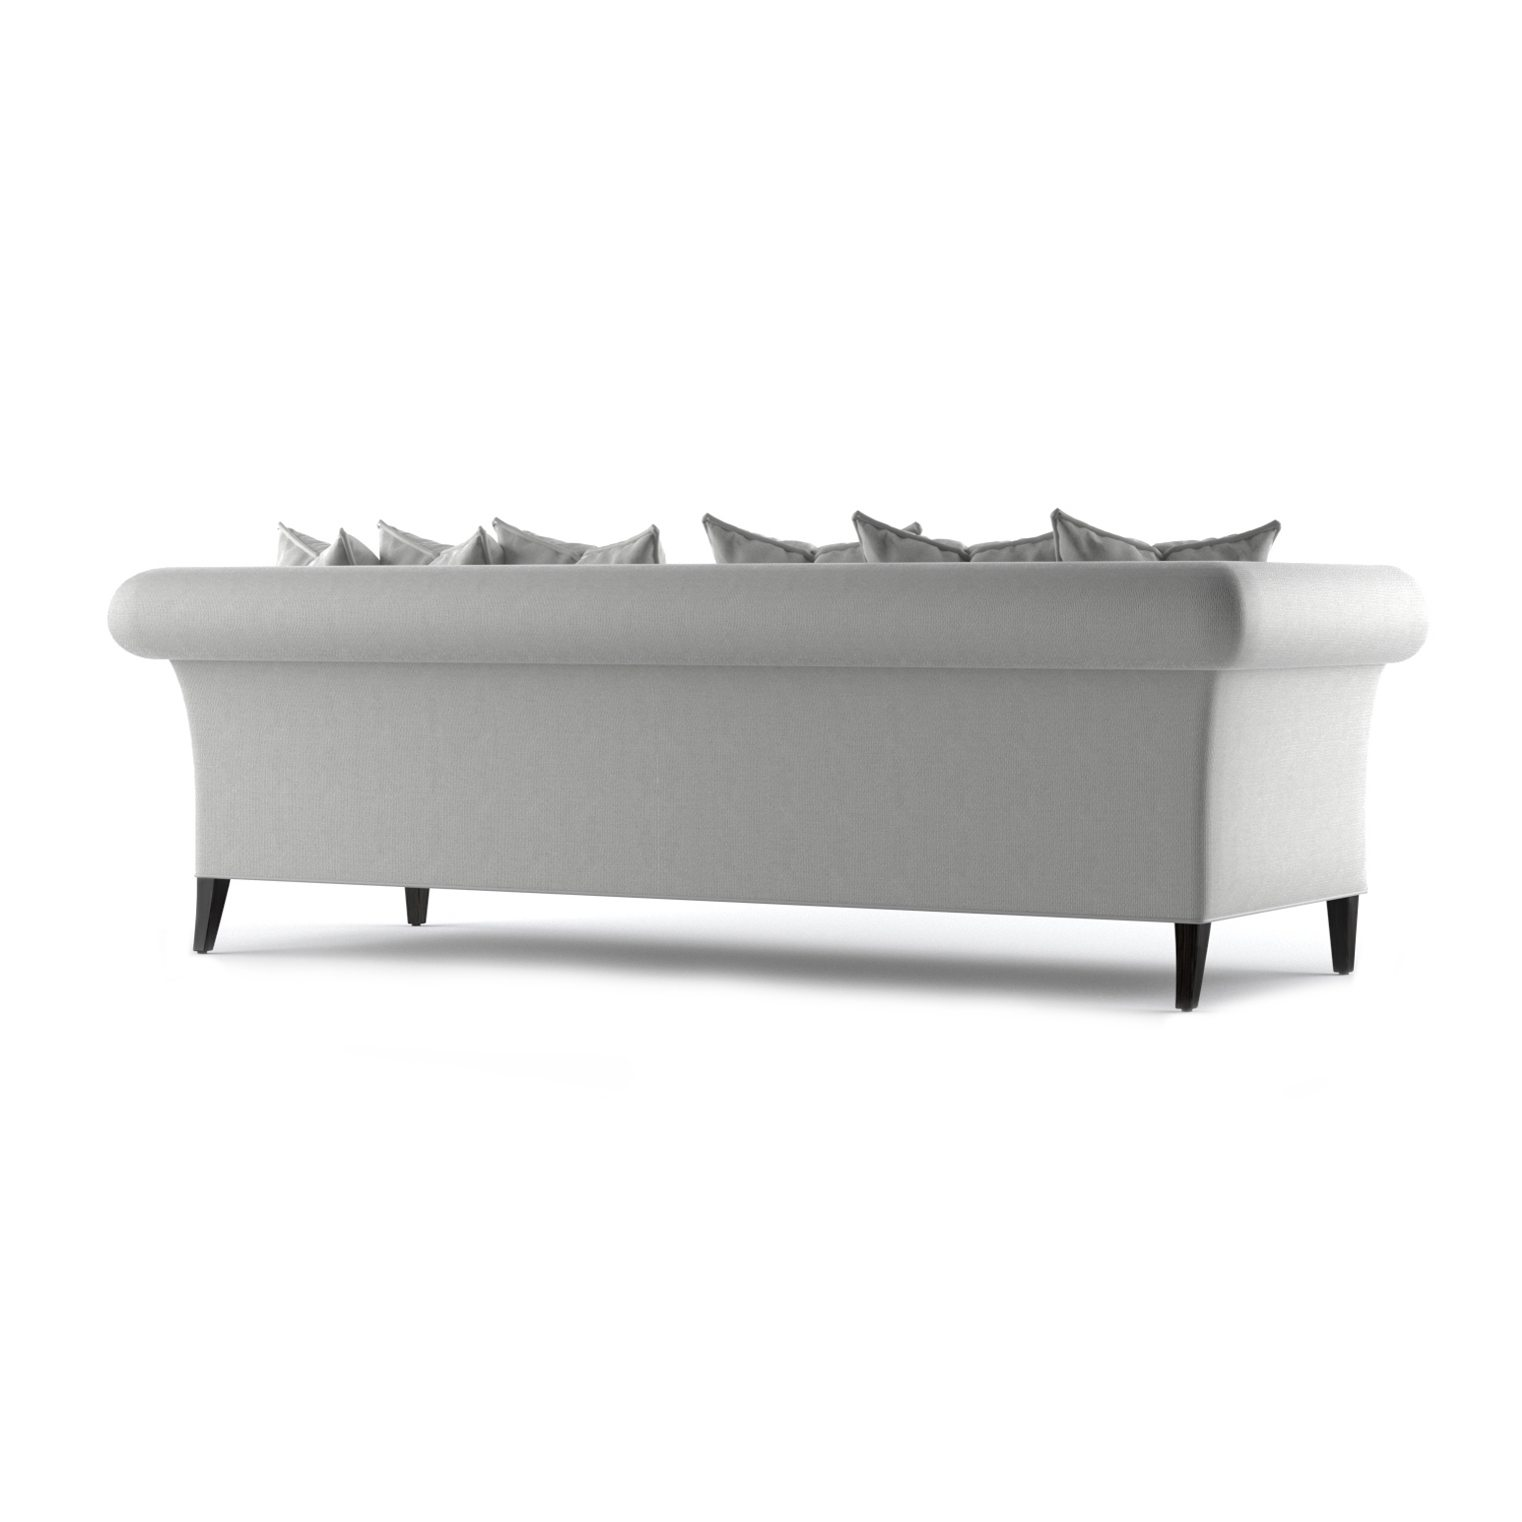 Baker Three and a Half Seater Sofa by Bonham & Bonham 08